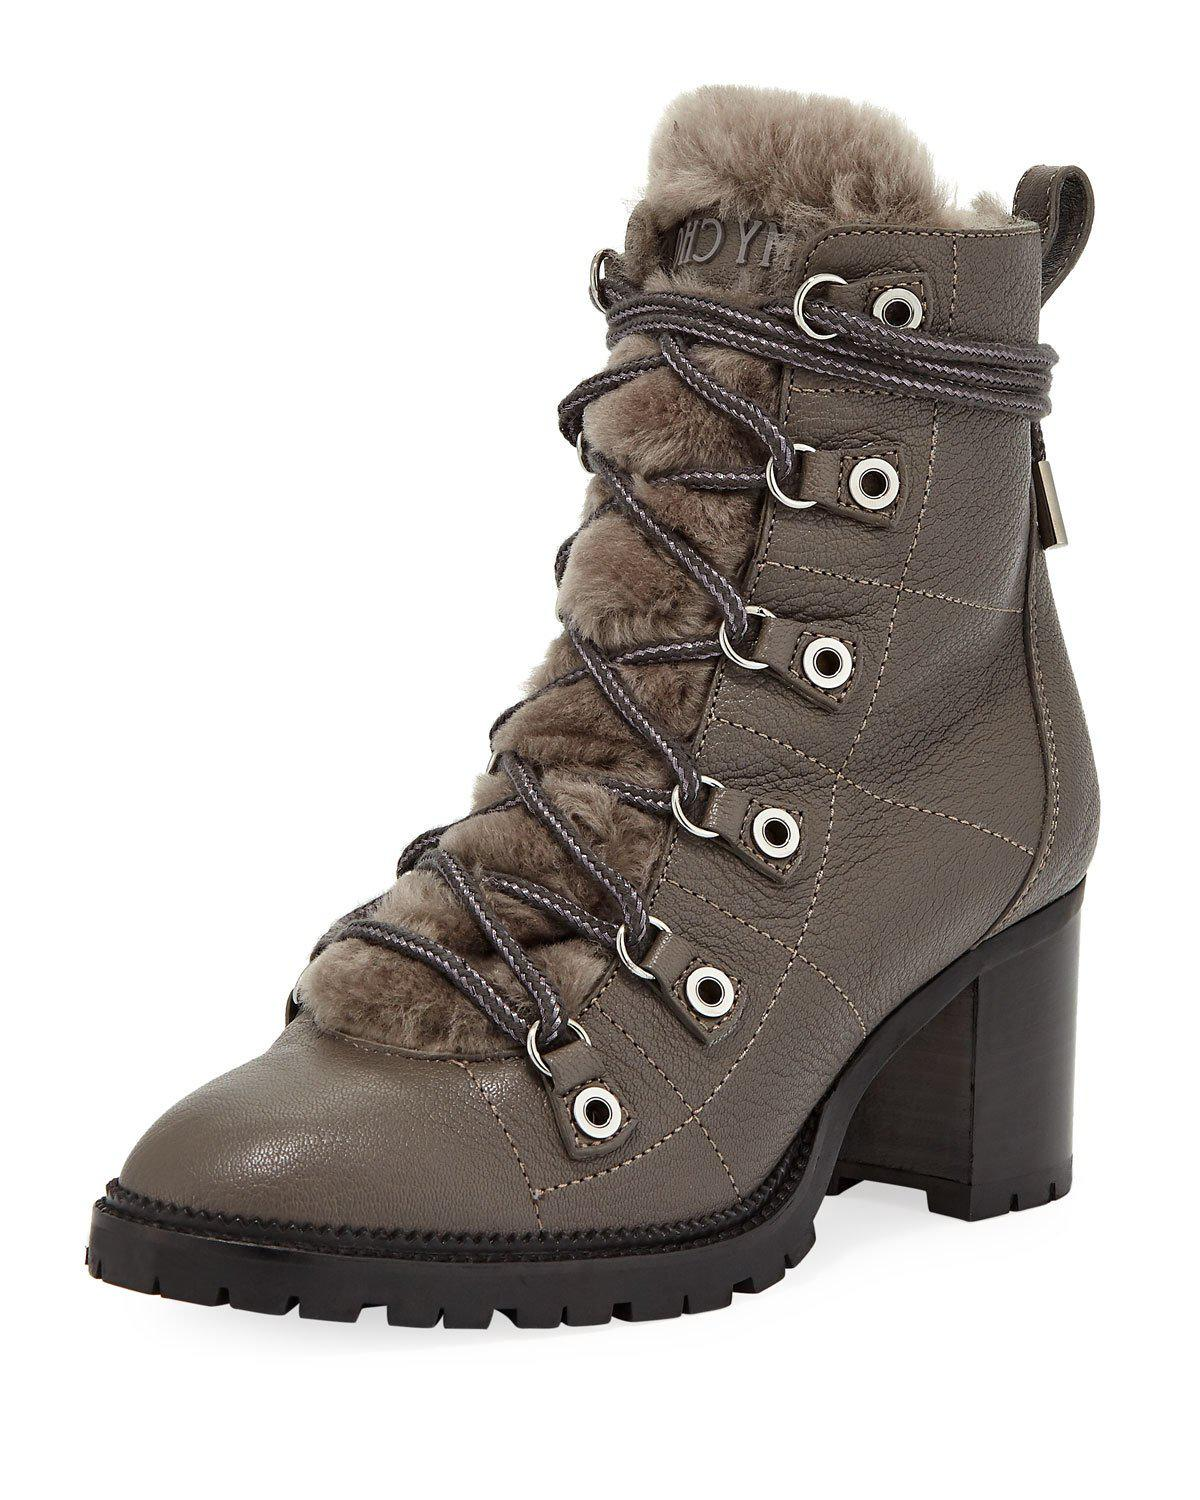 d4bd947a1fb Lyst - Jimmy Choo Hillary Shearling Fur-lined Hiker Booties in Gray